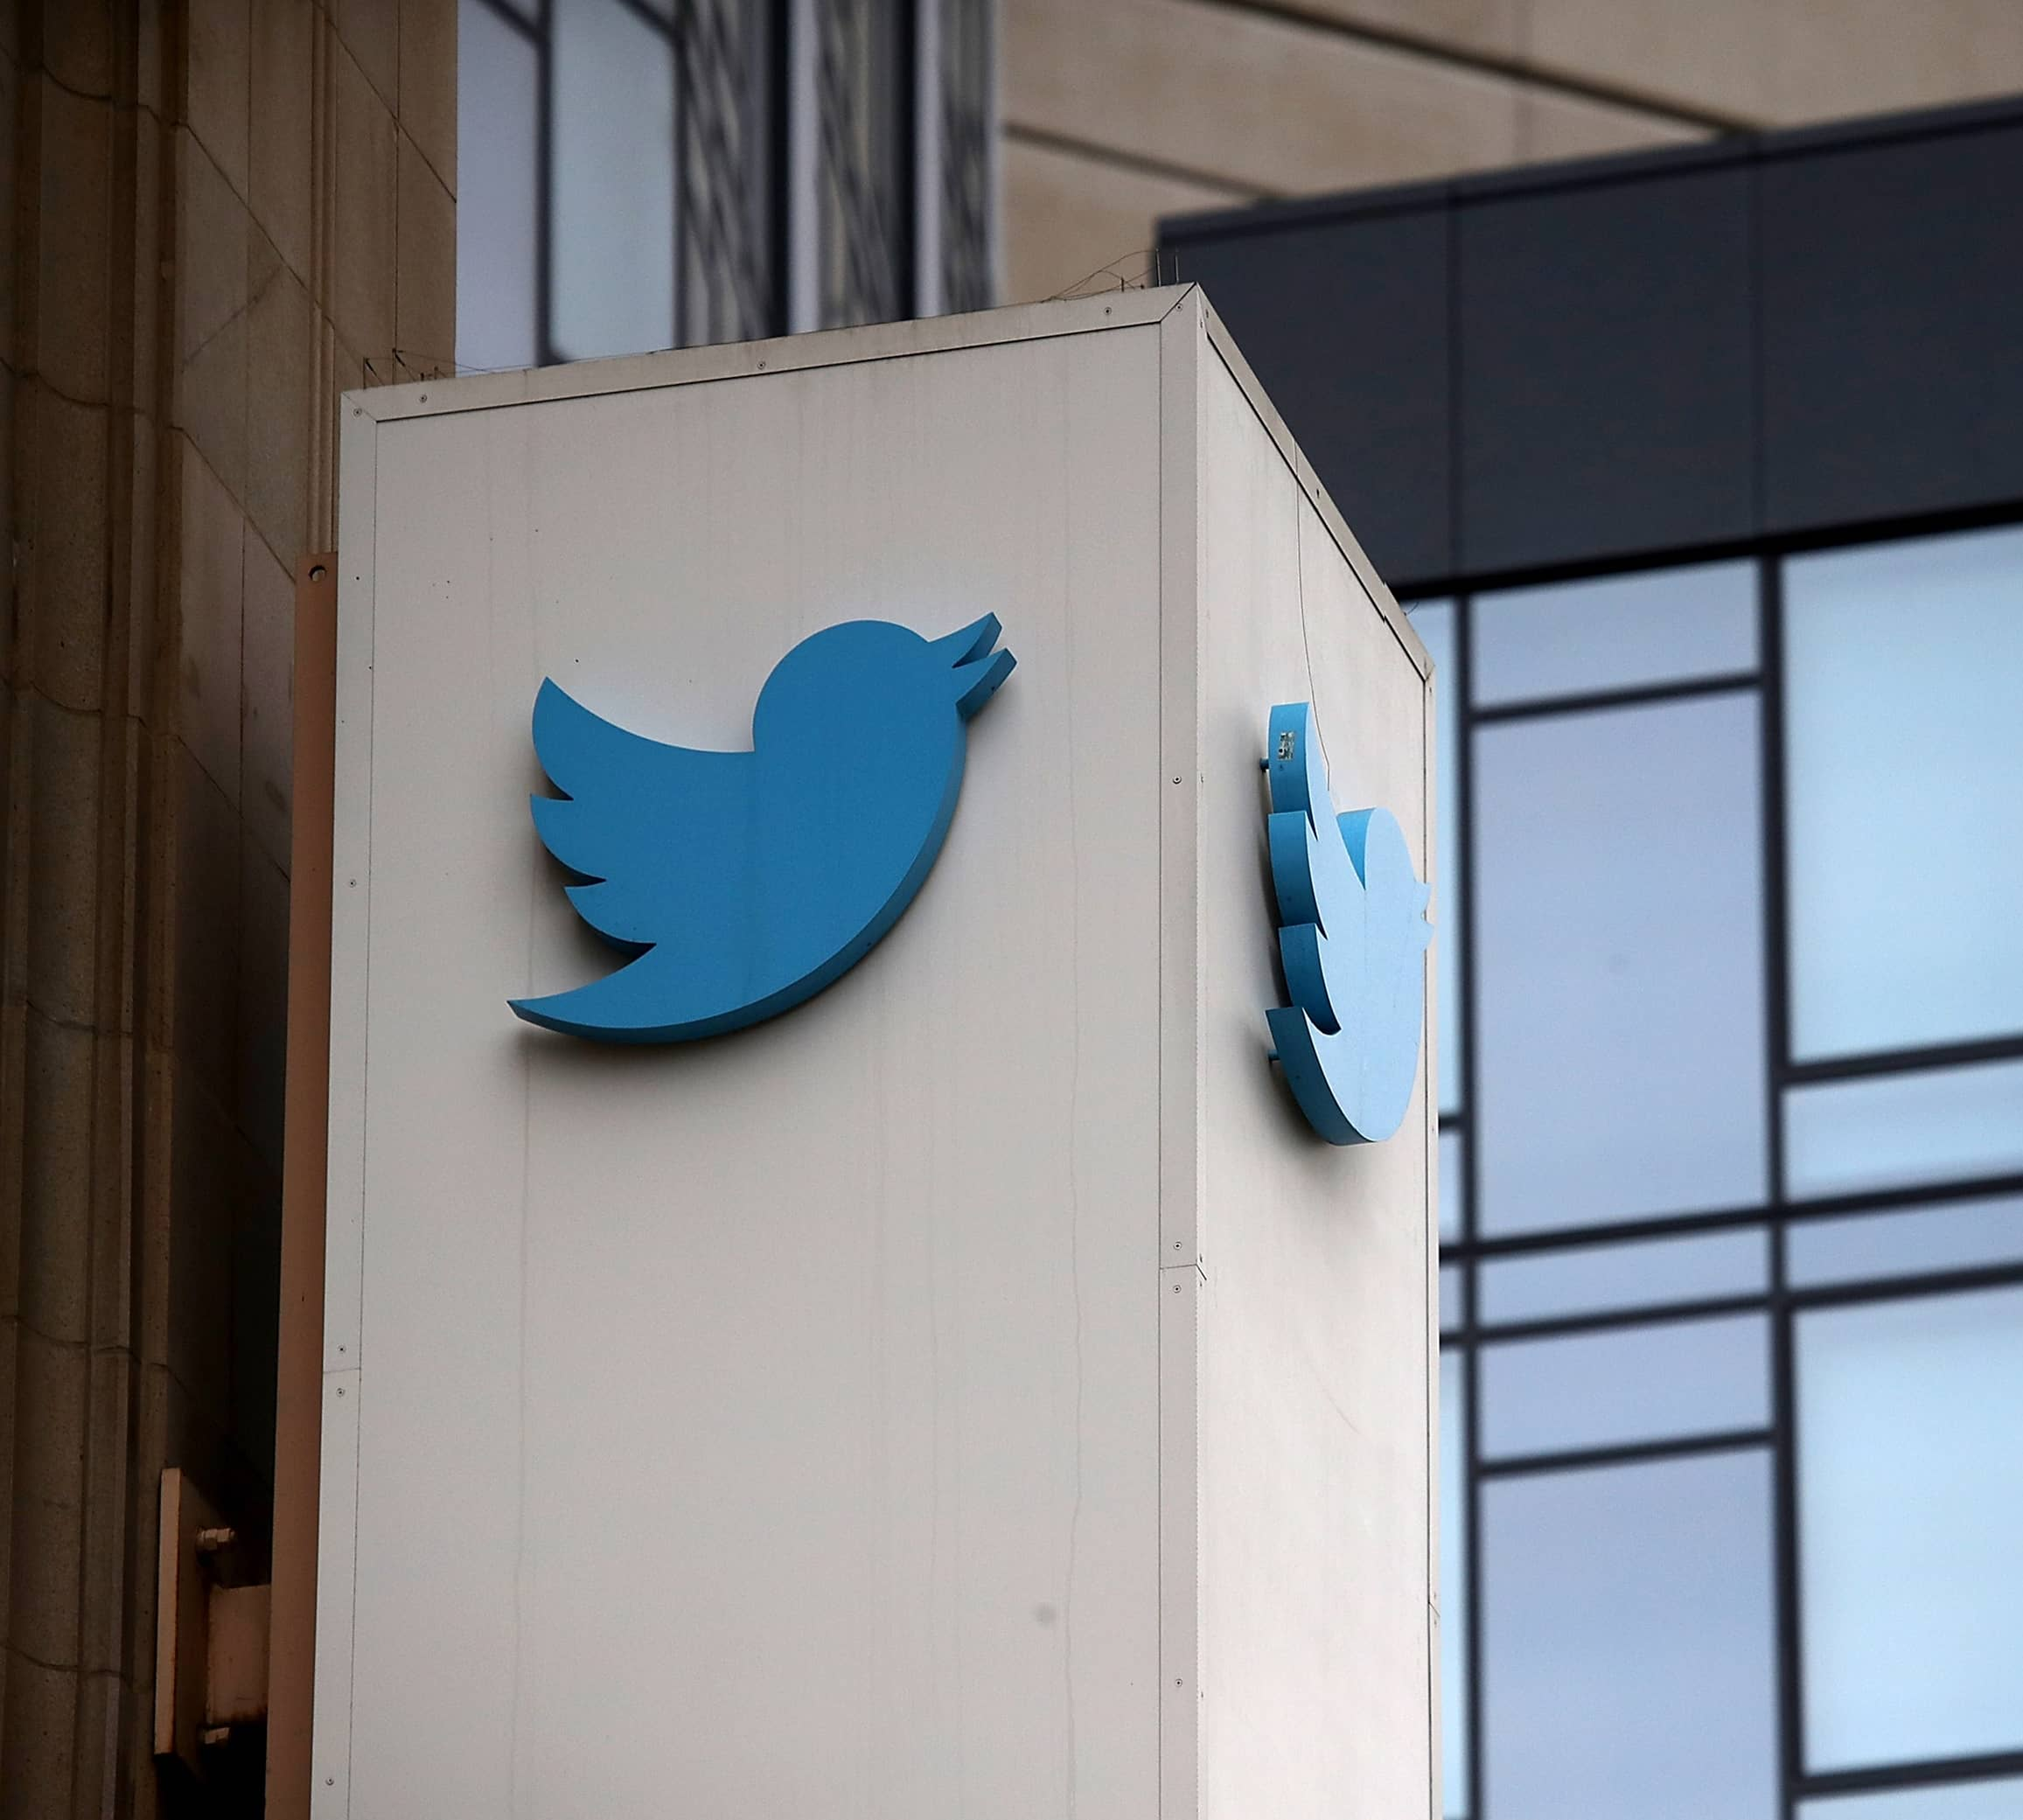 TWITTER GIVES WORKERS DAY OFF TO VOTE IN NATIONAL ELECTIONS